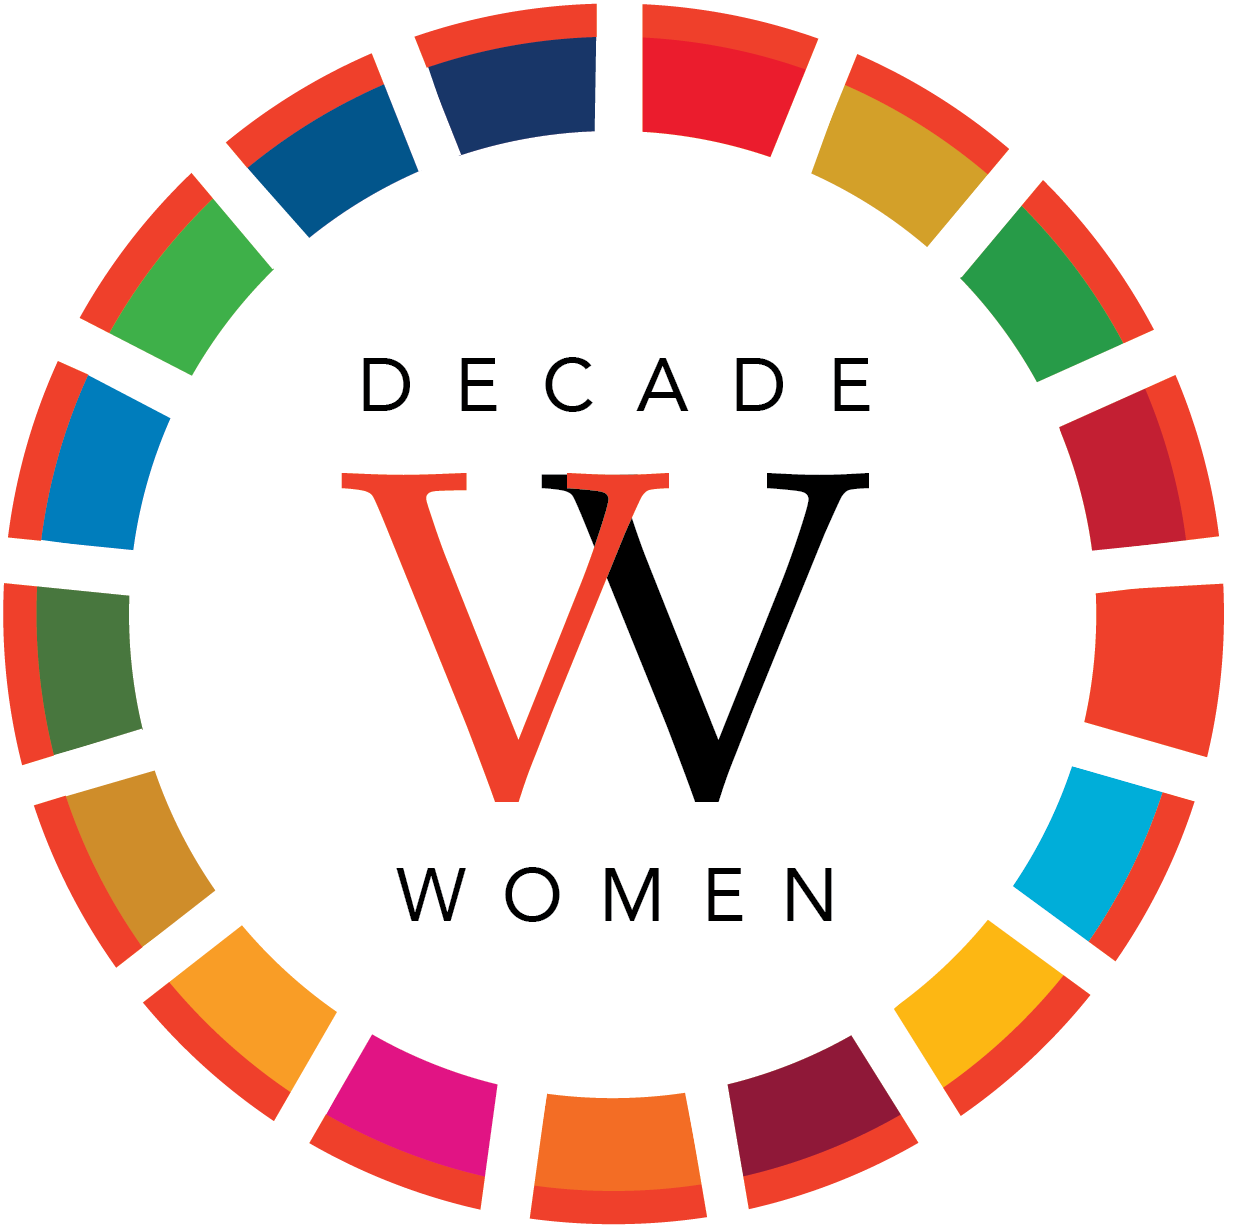 Decade Of Women Selects Rannveig Rist for Quantum Impact Award